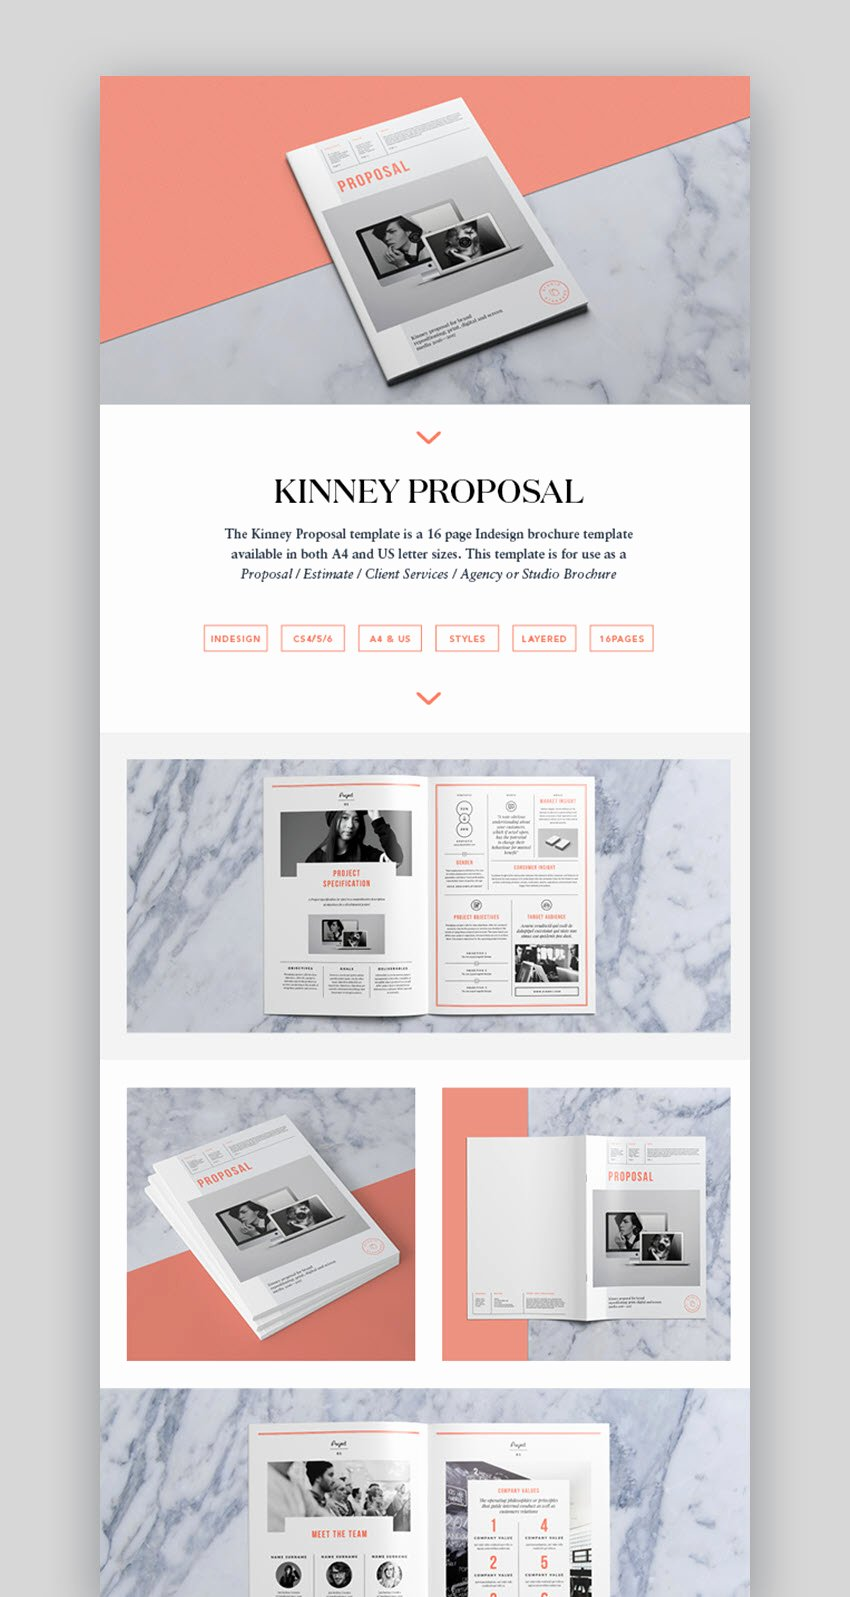 Freelance Graphic Design Proposal Template New 20 top Graphic Design Branding Project Proposal